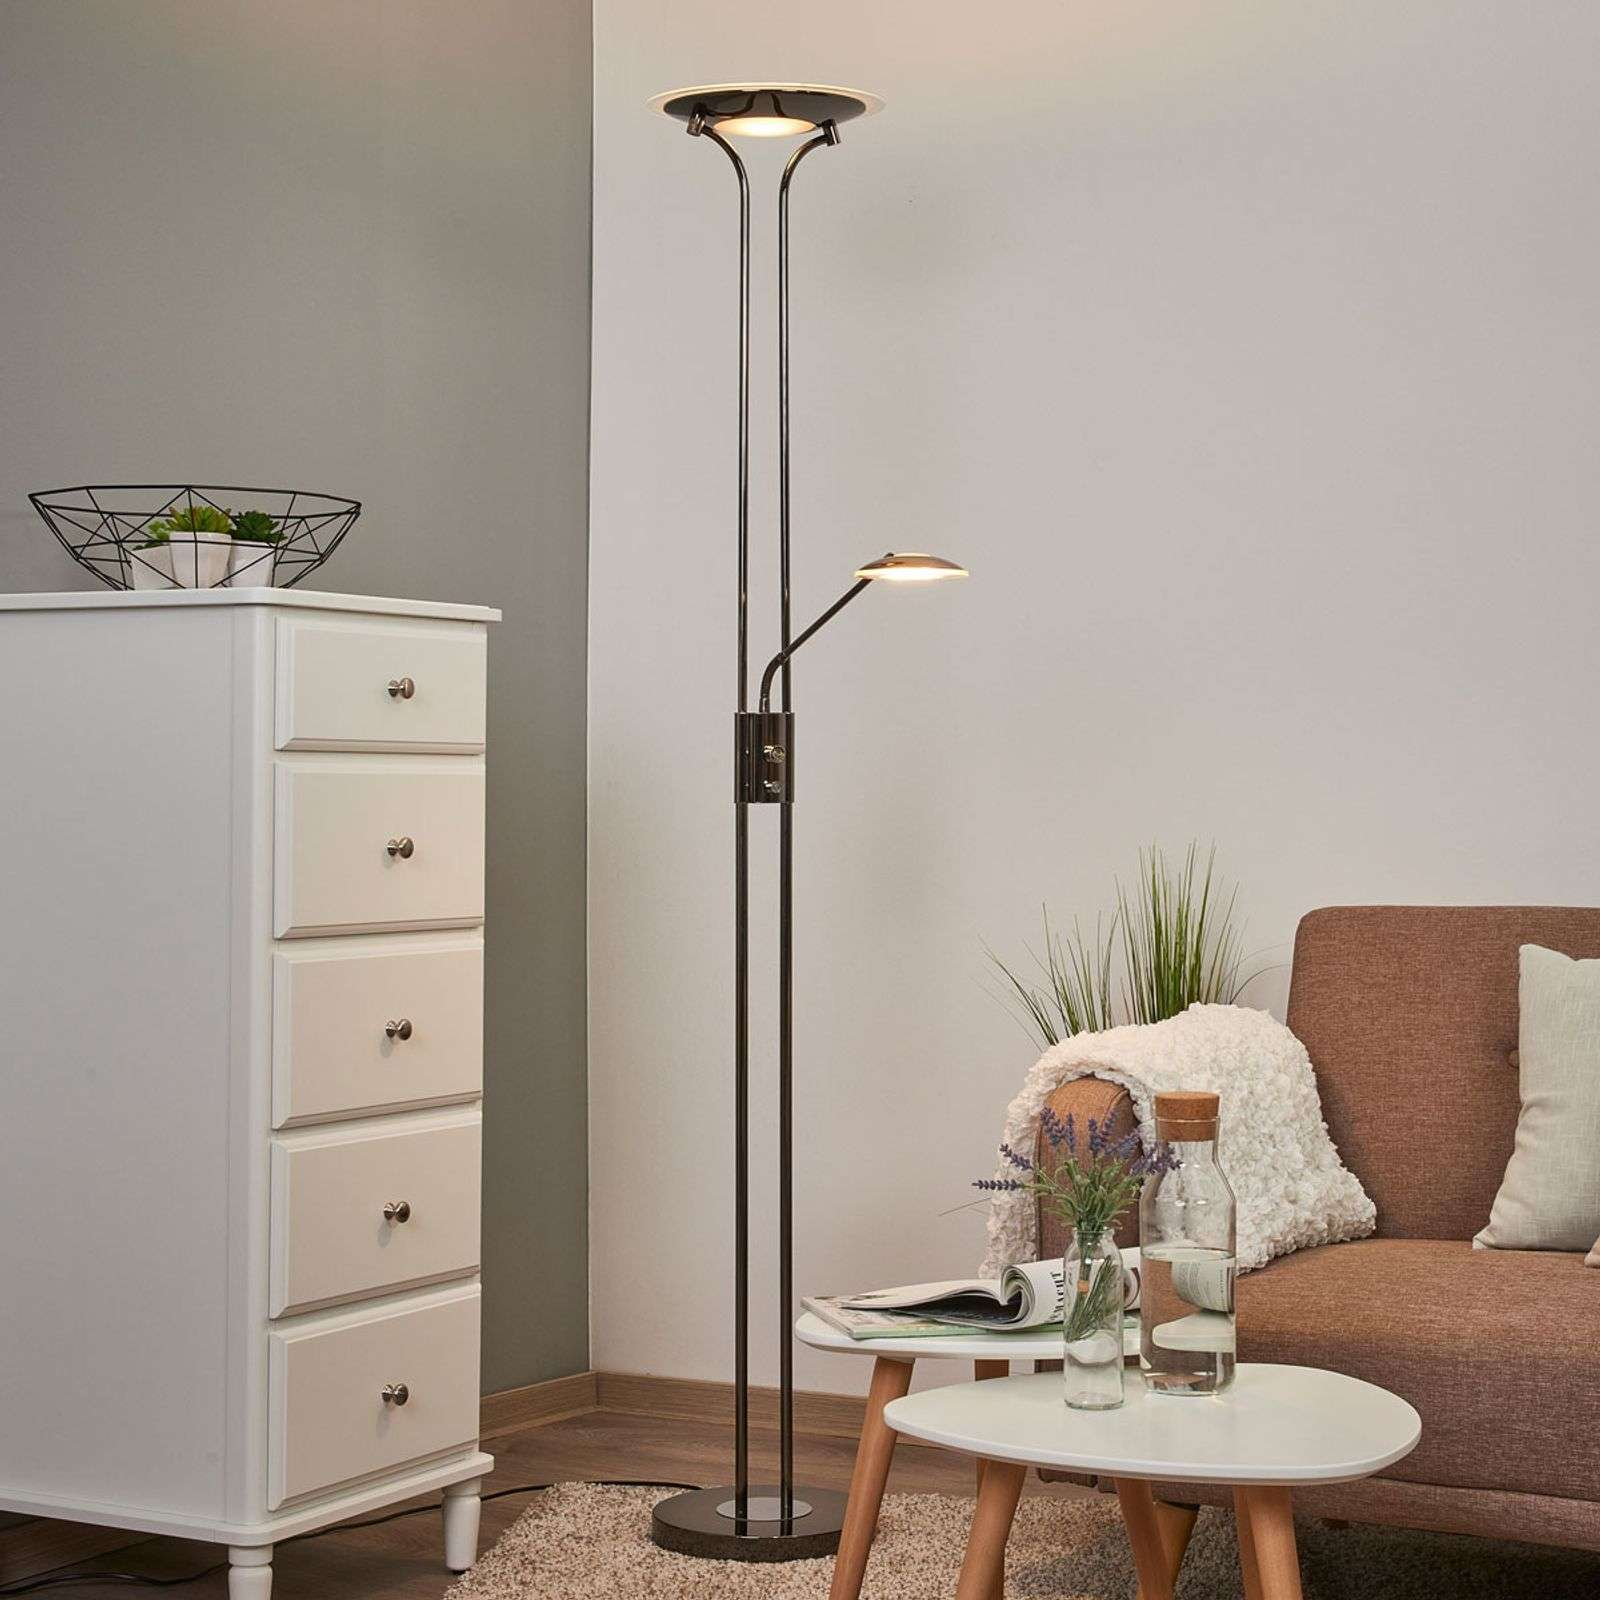 Lampadaire à éclairage indirect LED Aras